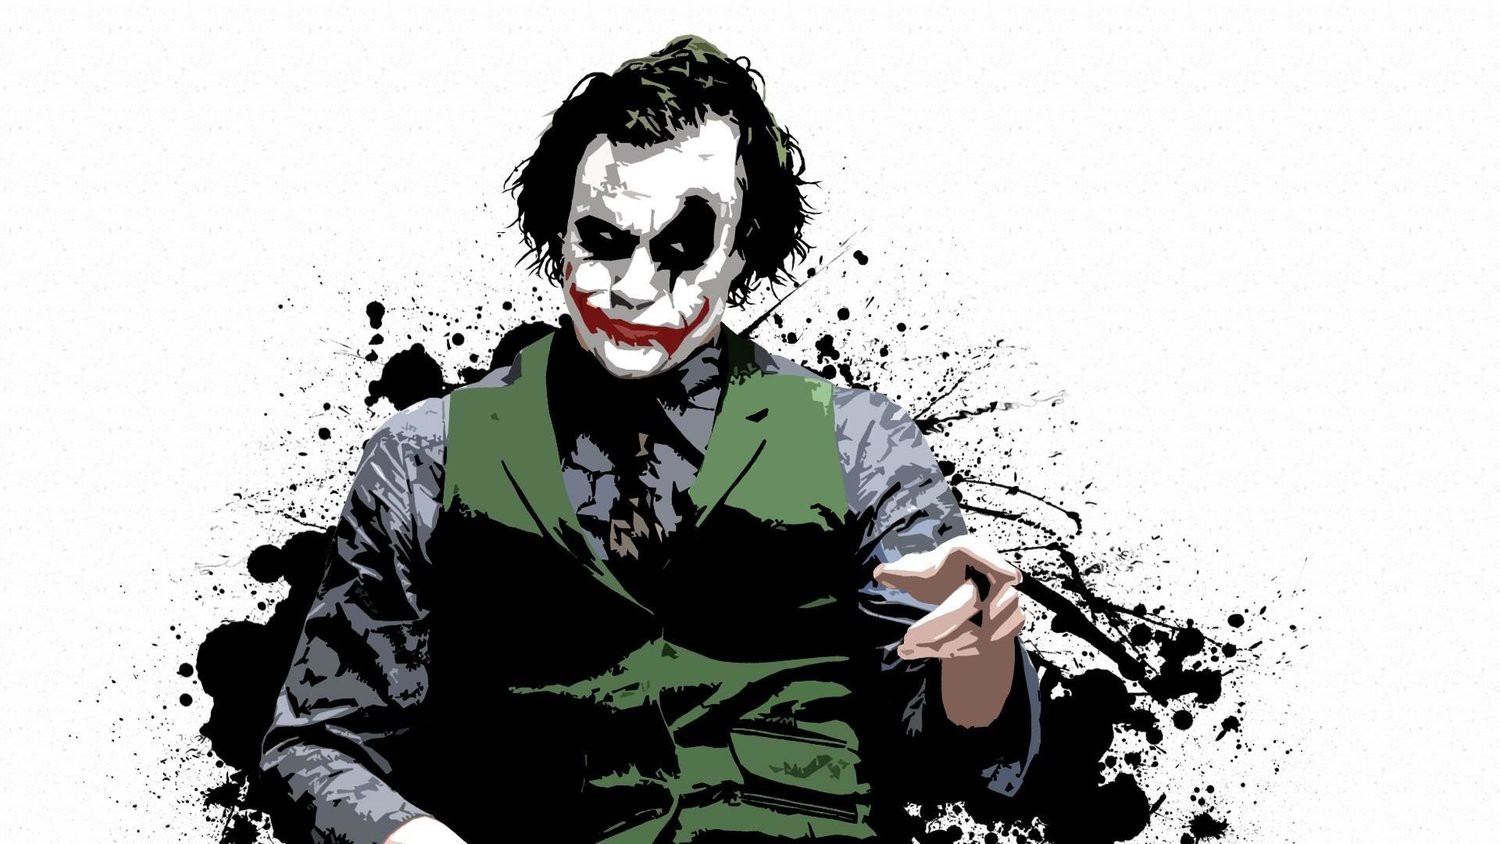 The Dark Knight's Joker - Sunny Aggarwal's Blog - Medium